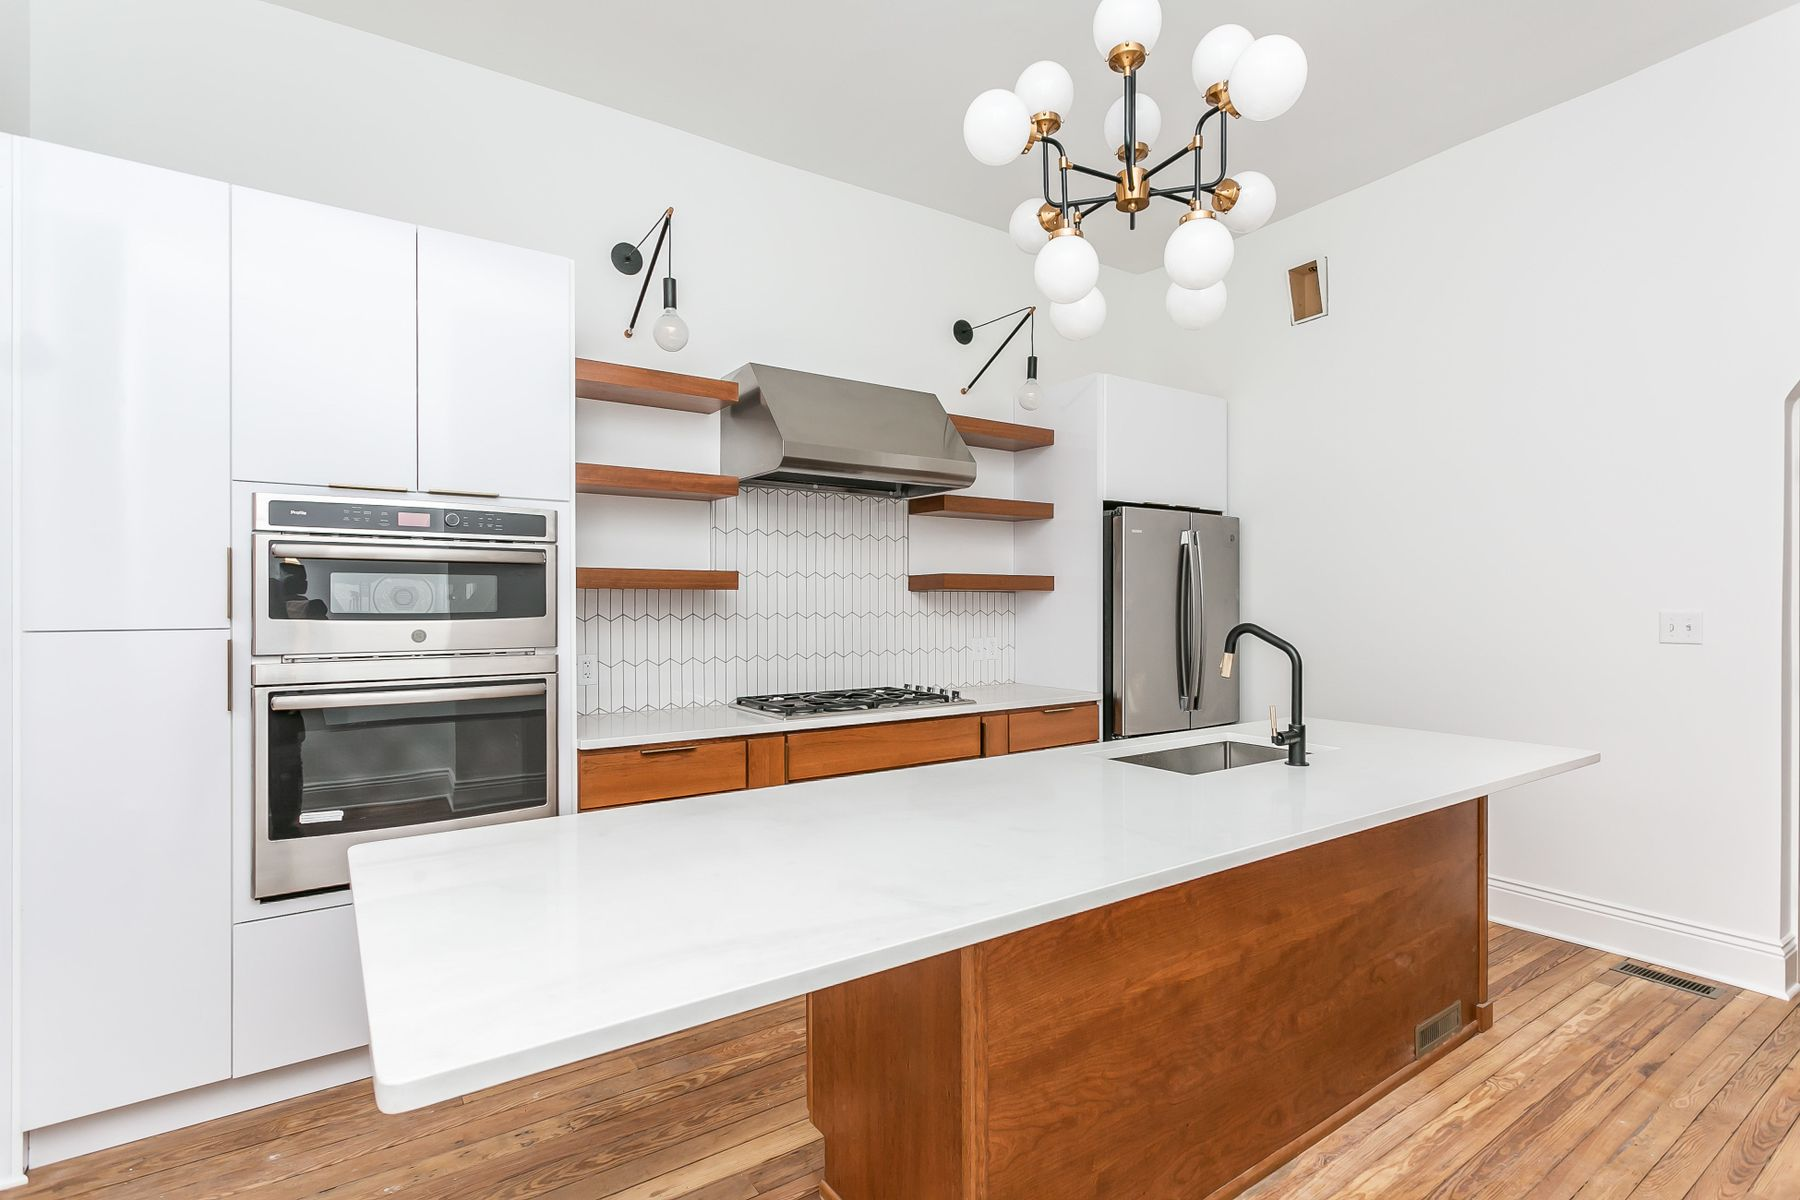 Kitchen in new town house in charles village